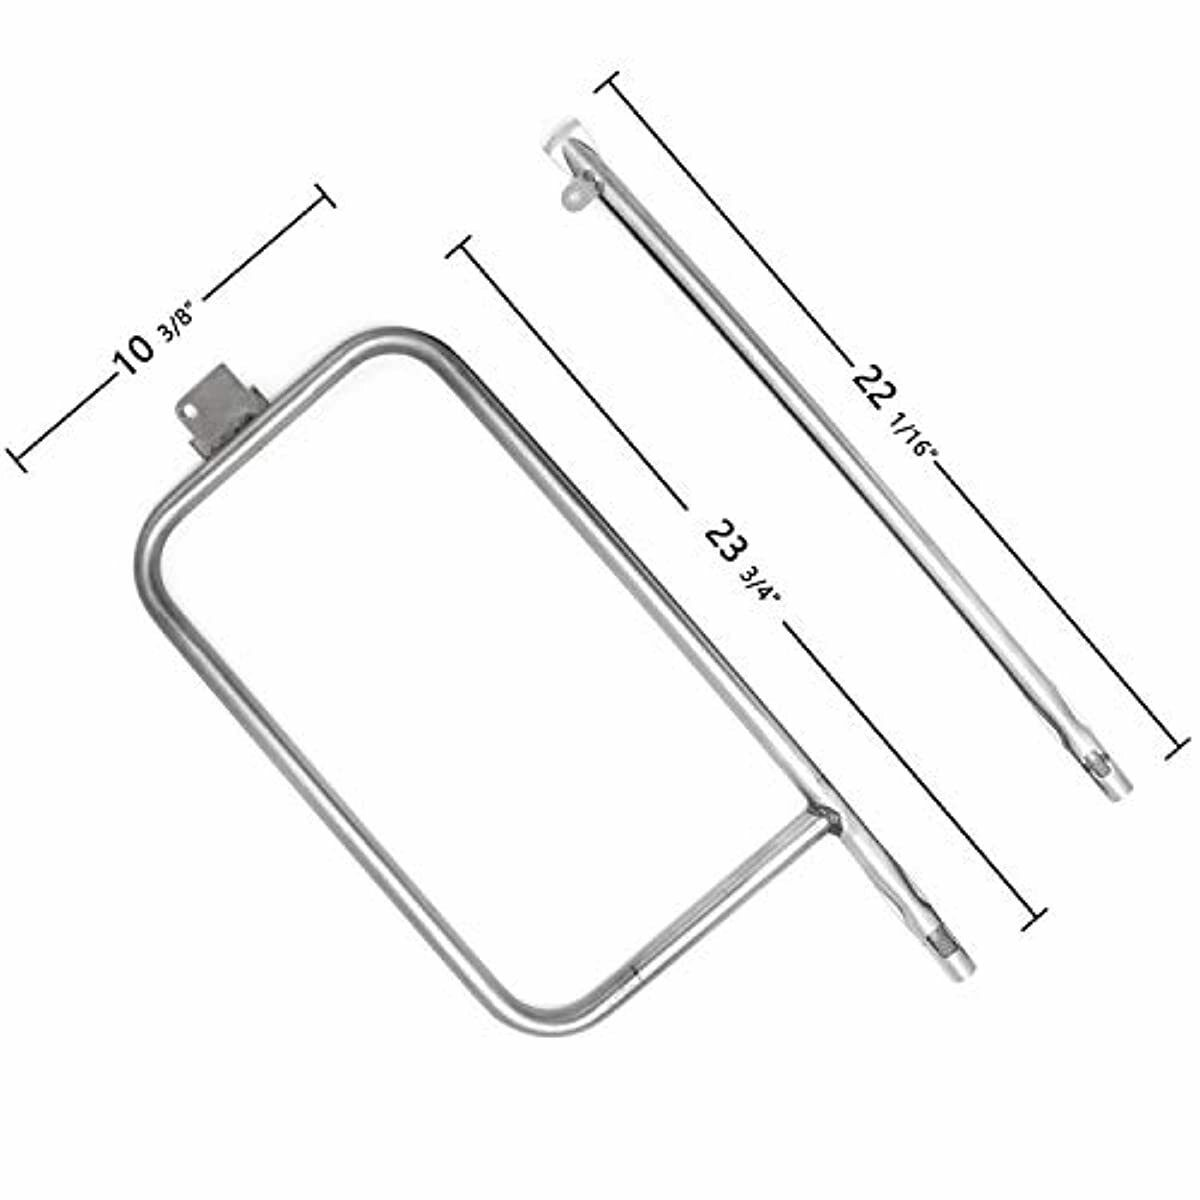 Bbq Gas Grill Burners Replacement Parts For Weber Q Series